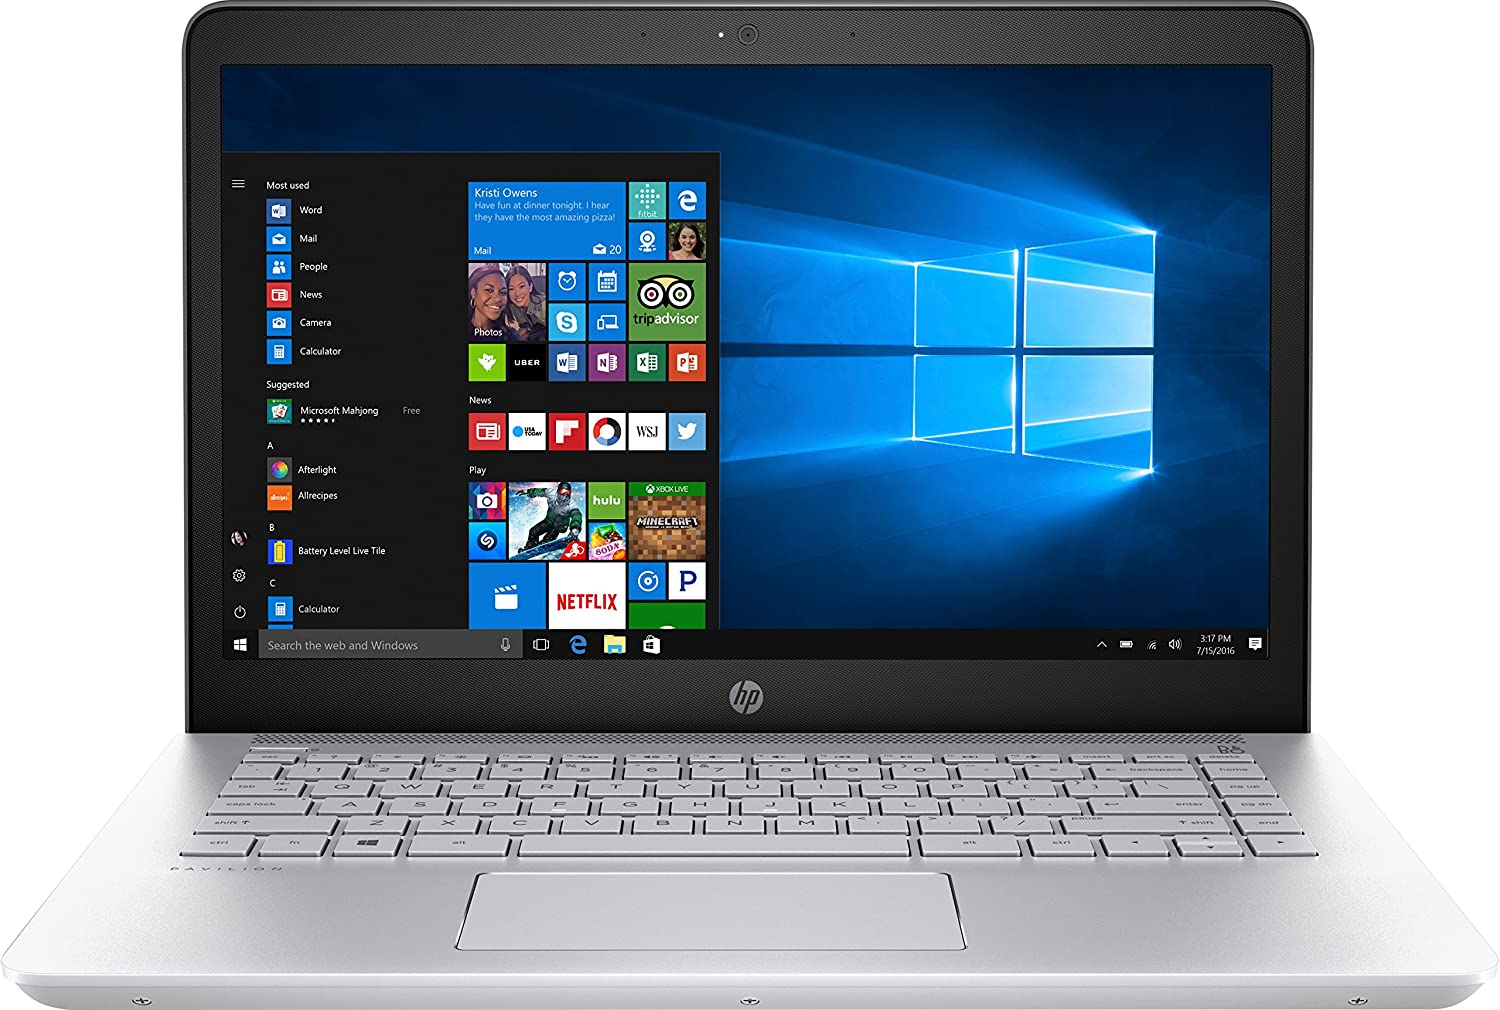 "HP 1KT95UA Pavilion Notebook Laptop (Windows 10, 7th Gen Intel Core i7-7500U Processor, 14"" (1920 x 1080) Full HD Display, SSD: 512 GB, RAM: 8 GB DDR4) Silver"